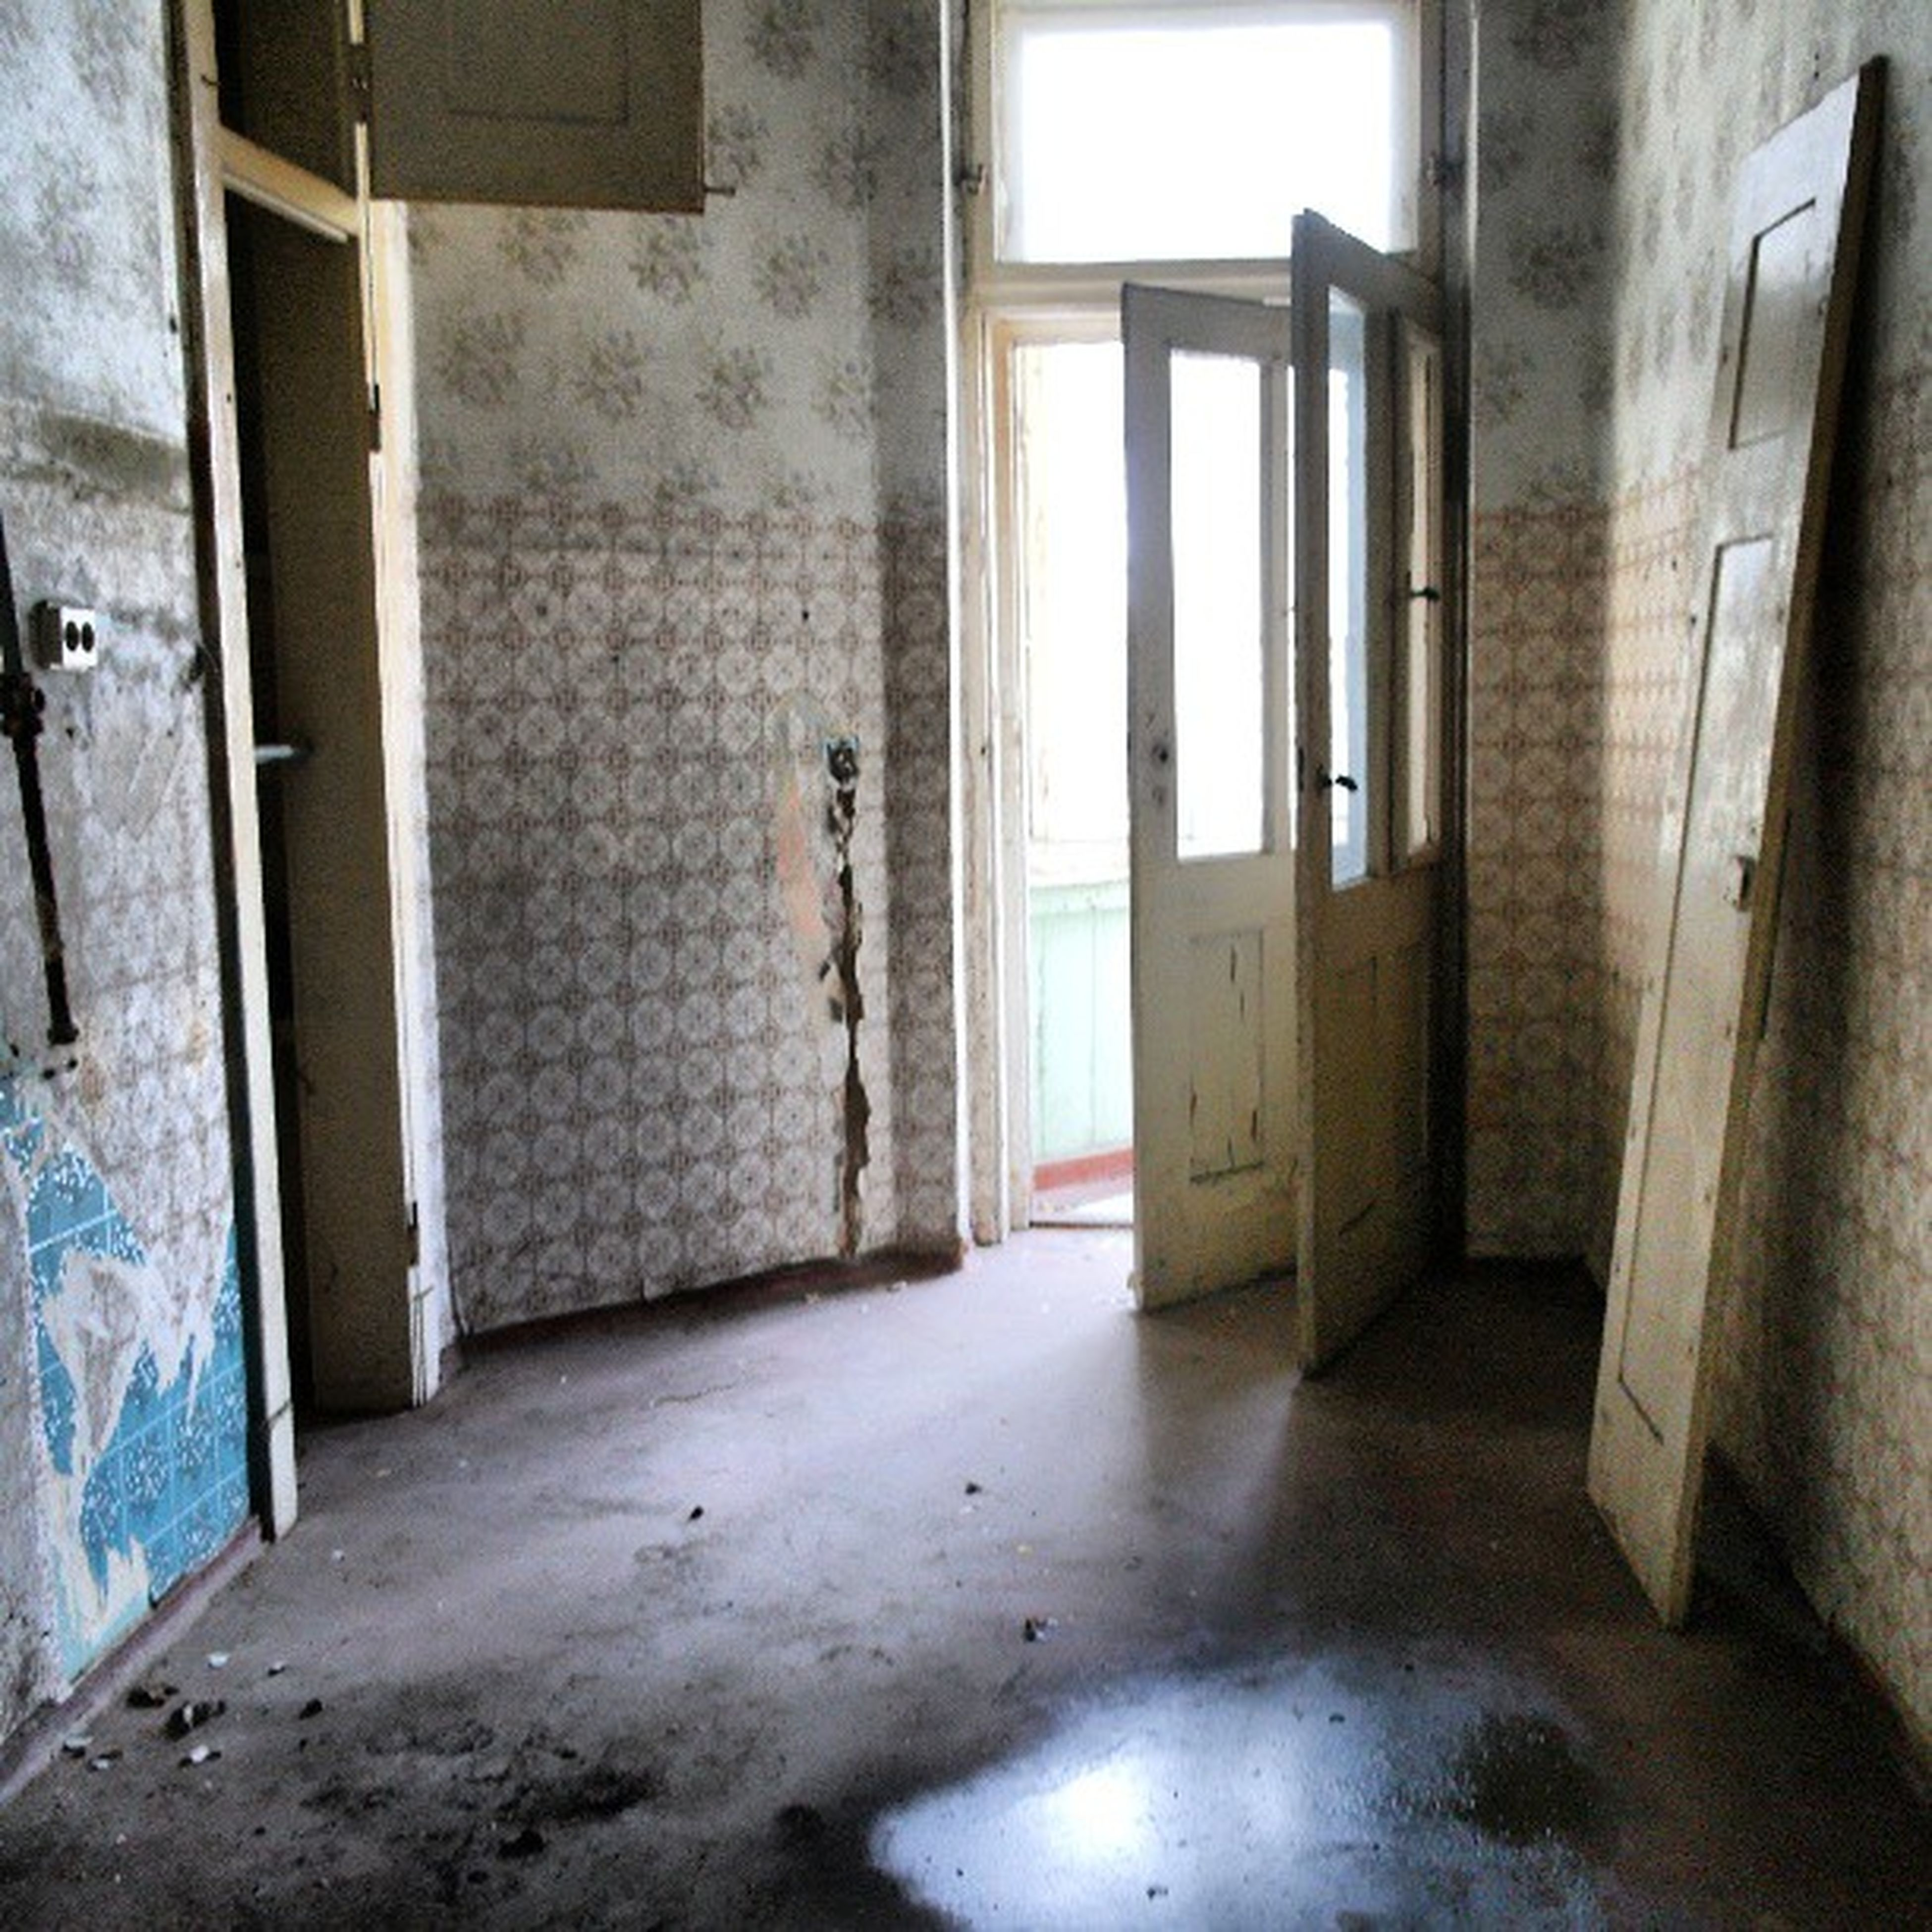 architecture, indoors, built structure, window, building, door, wall - building feature, corridor, building exterior, abandoned, interior, old, wall, empty, day, absence, no people, house, sunlight, glass - material